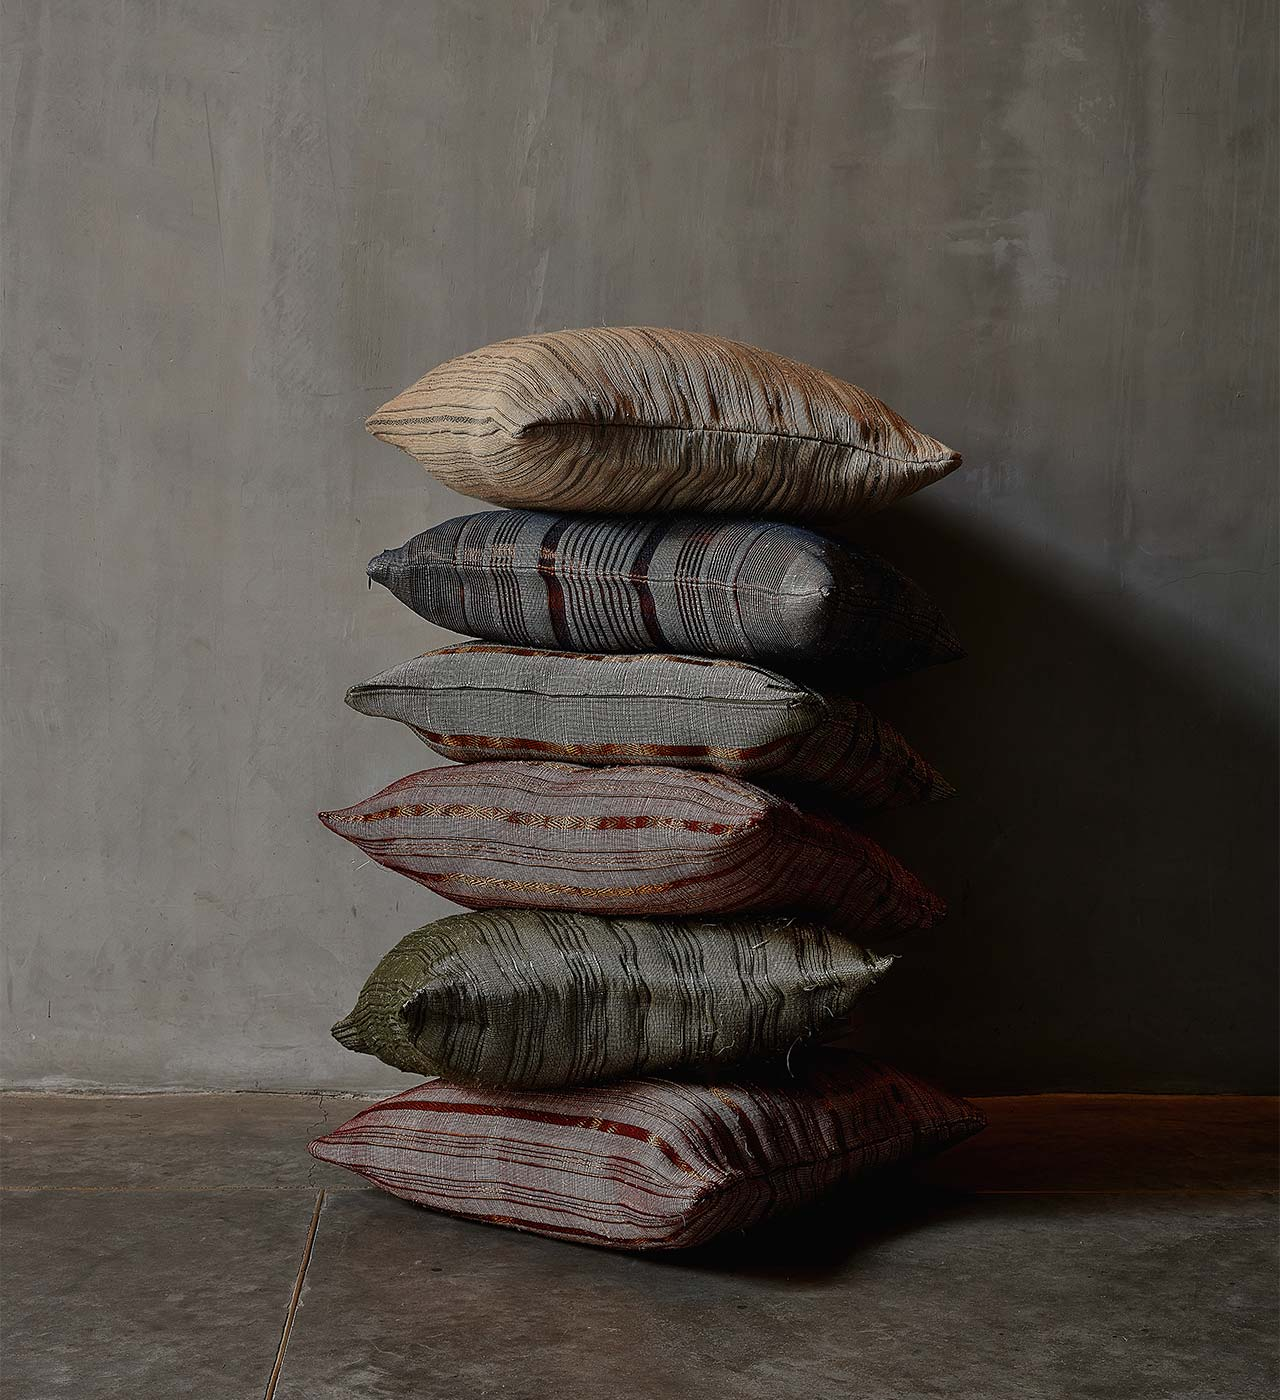 Stacked pillows with concrete background. Handwoven navy blue, olive green, natural, and burgundy pillows in plantain fiber and copper threads or stainless-steel threads.